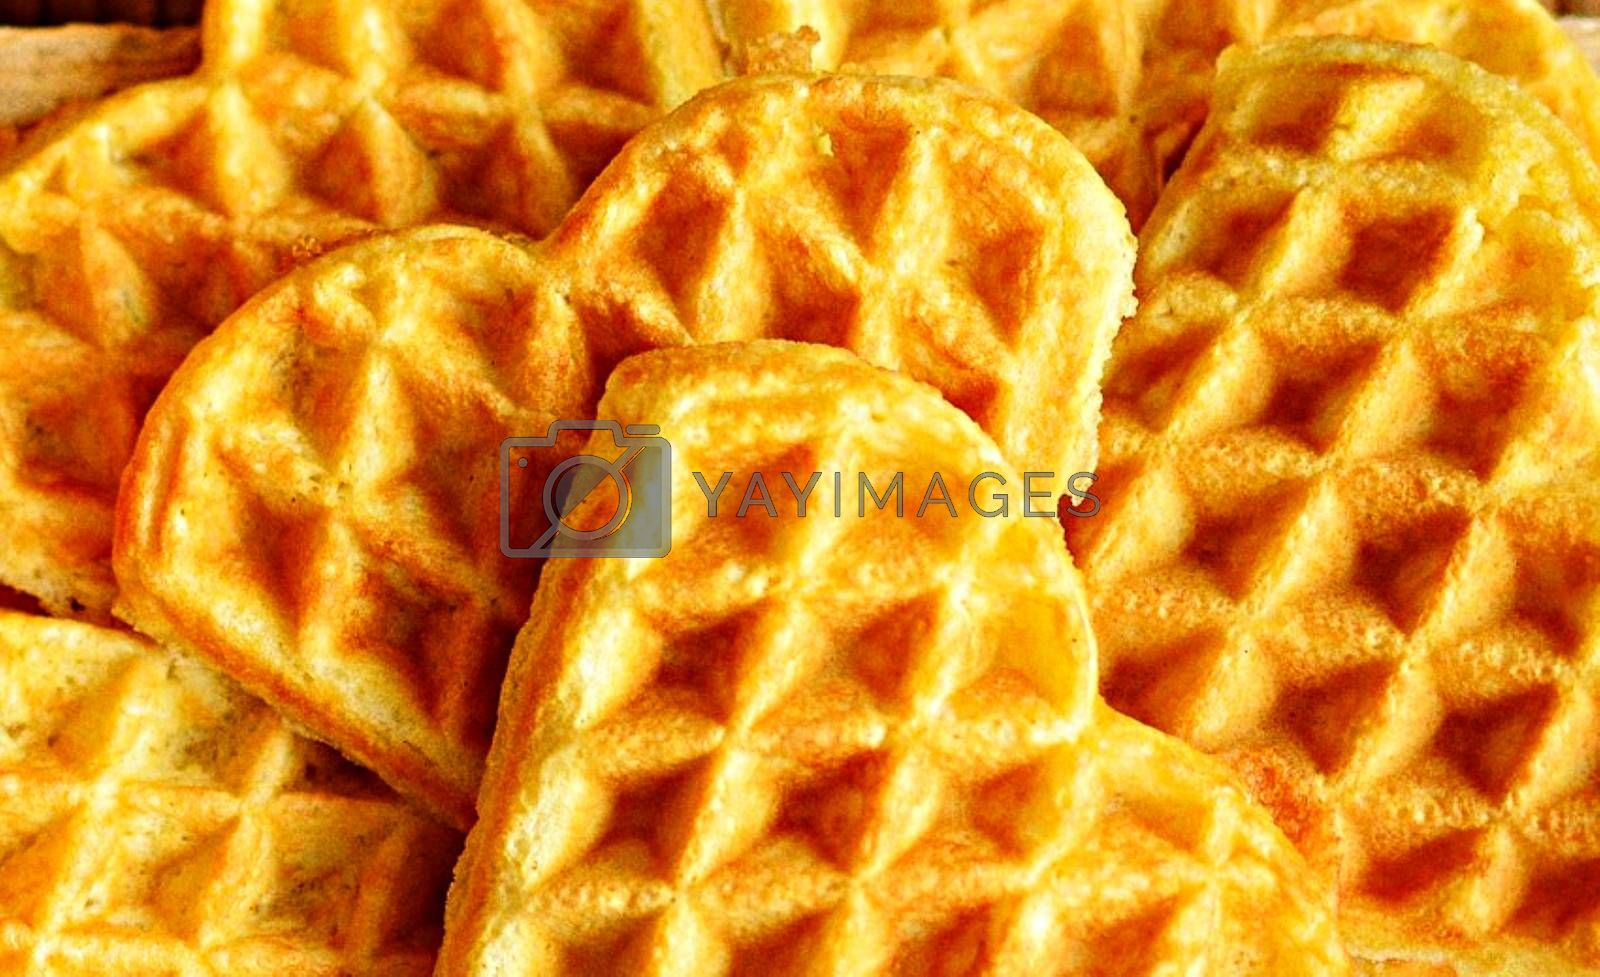 Royalty free image of Closeup shot of delicious heart-shaped waffles by balage941